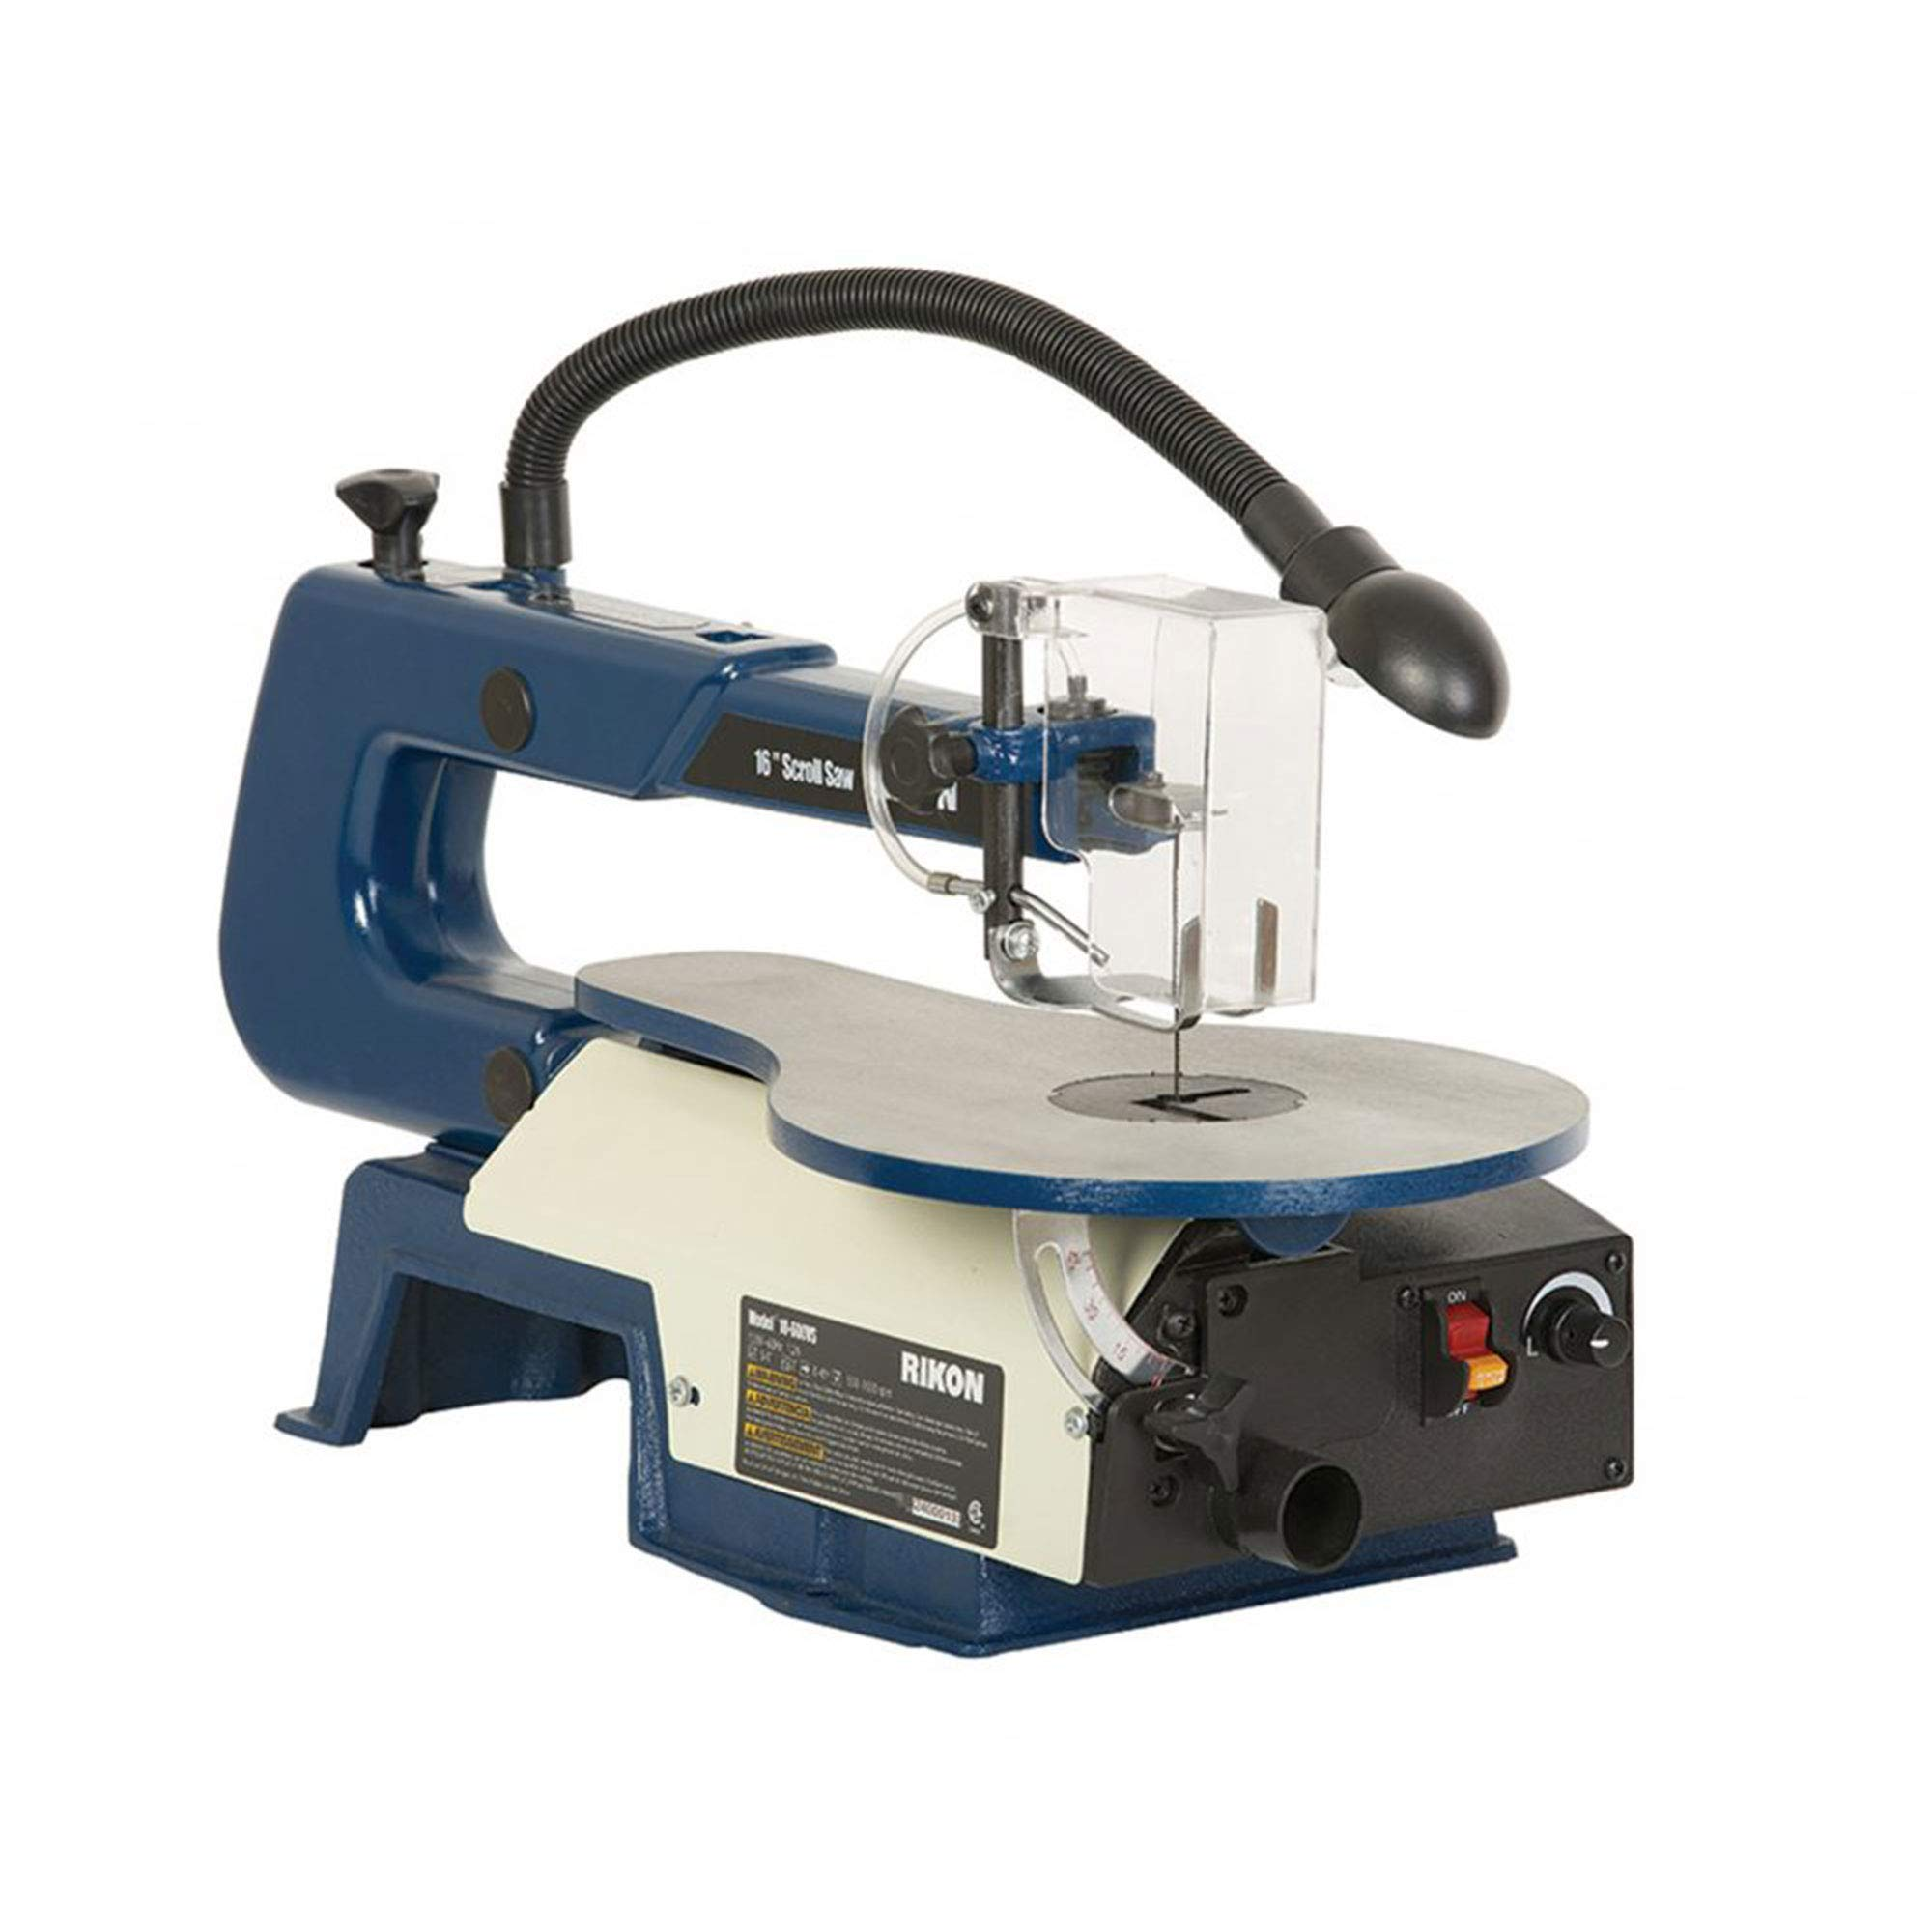 Rikon 10-600VS Scroll Saw With Lamp, 16-Inch by RIKON Power Tools